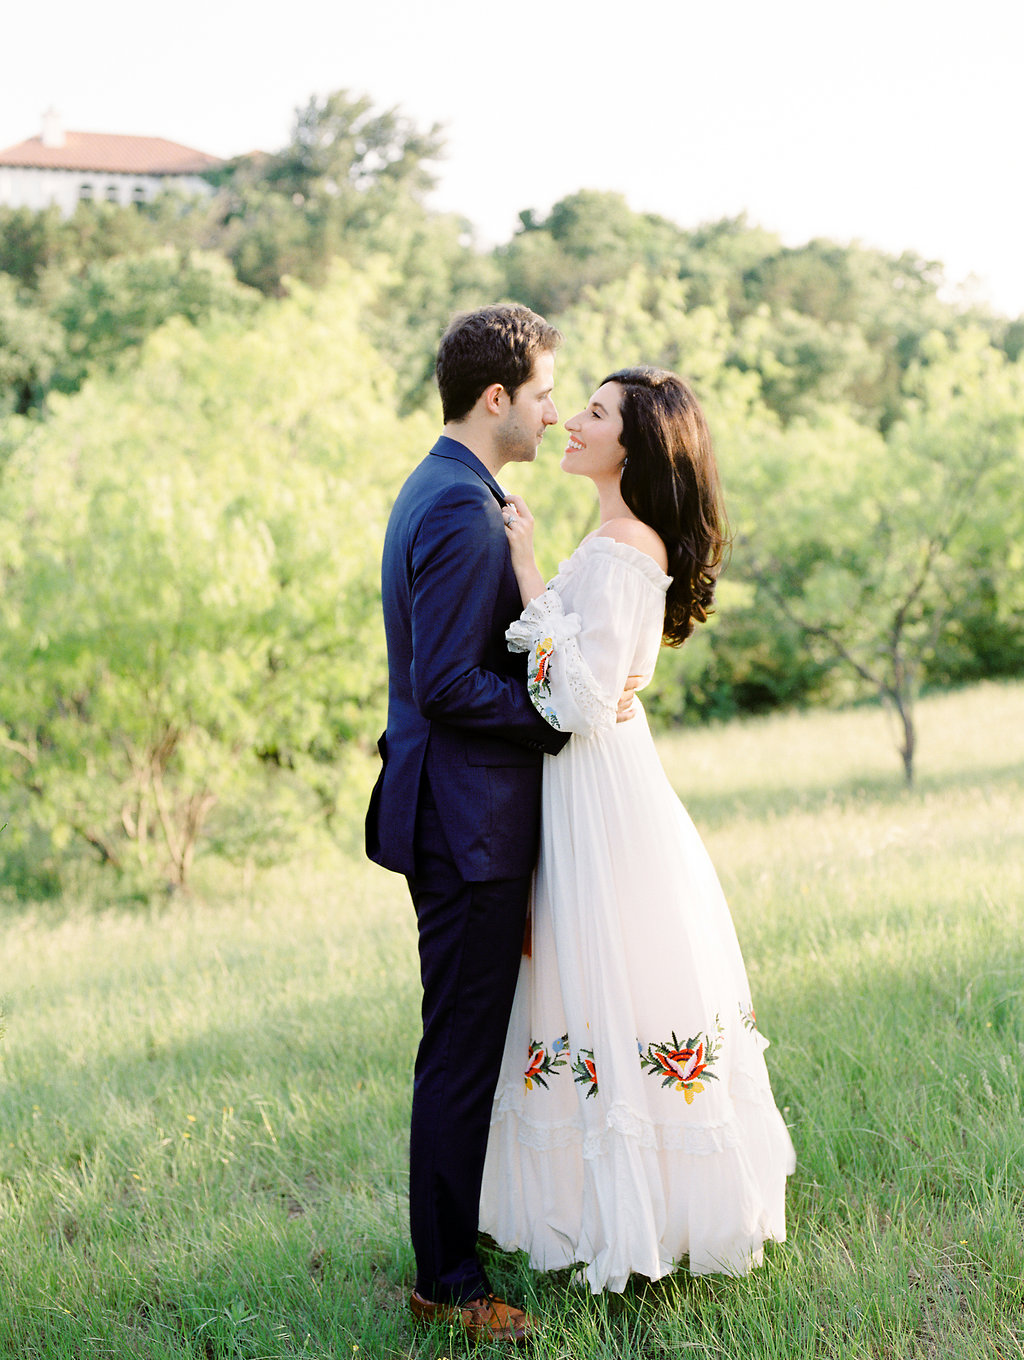 Best-Austin-Denver-California-Wedding-Photographers-Intimate-Elopement-24.jpg